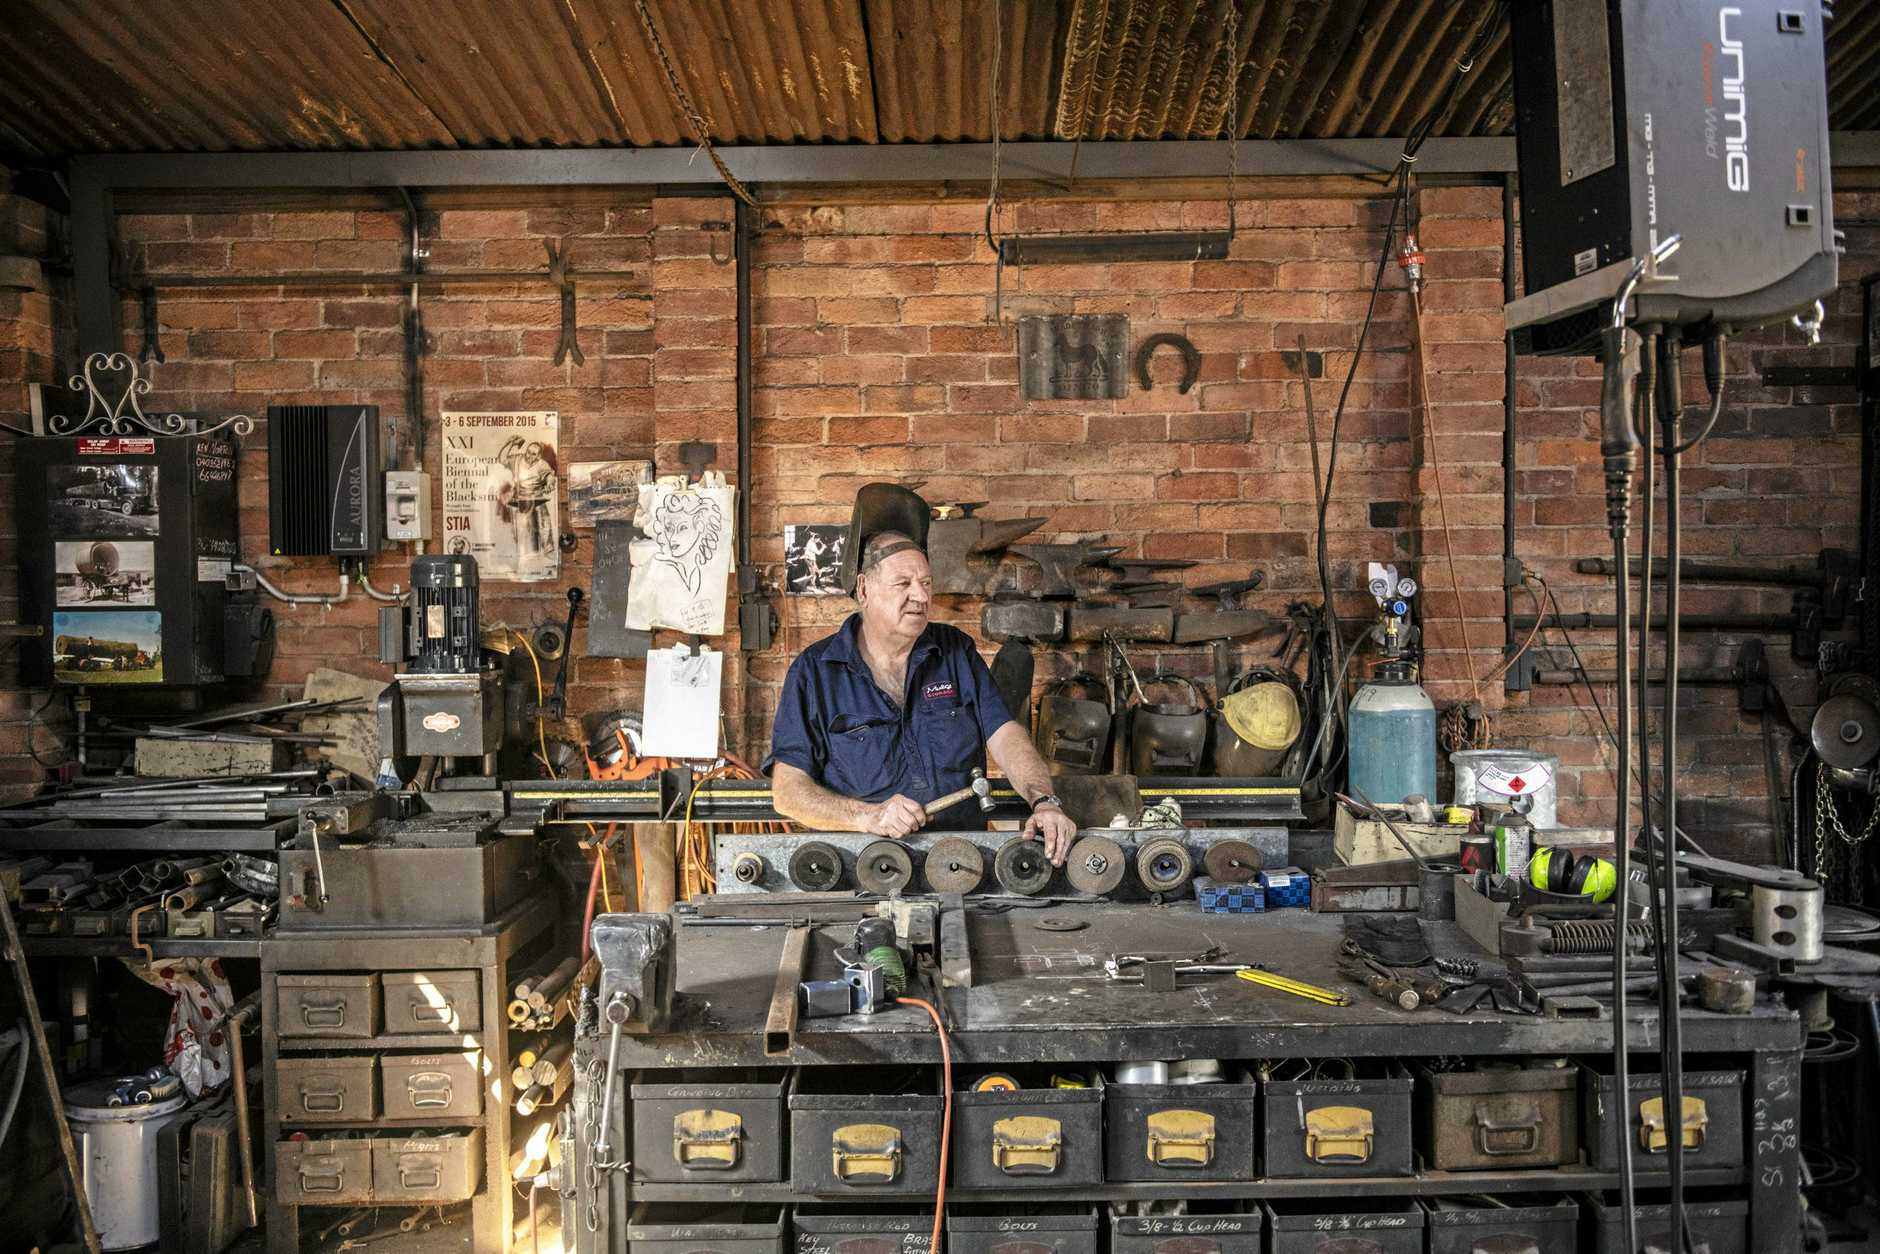 Take a look inside Eoin McSwan's blacksmith shed.